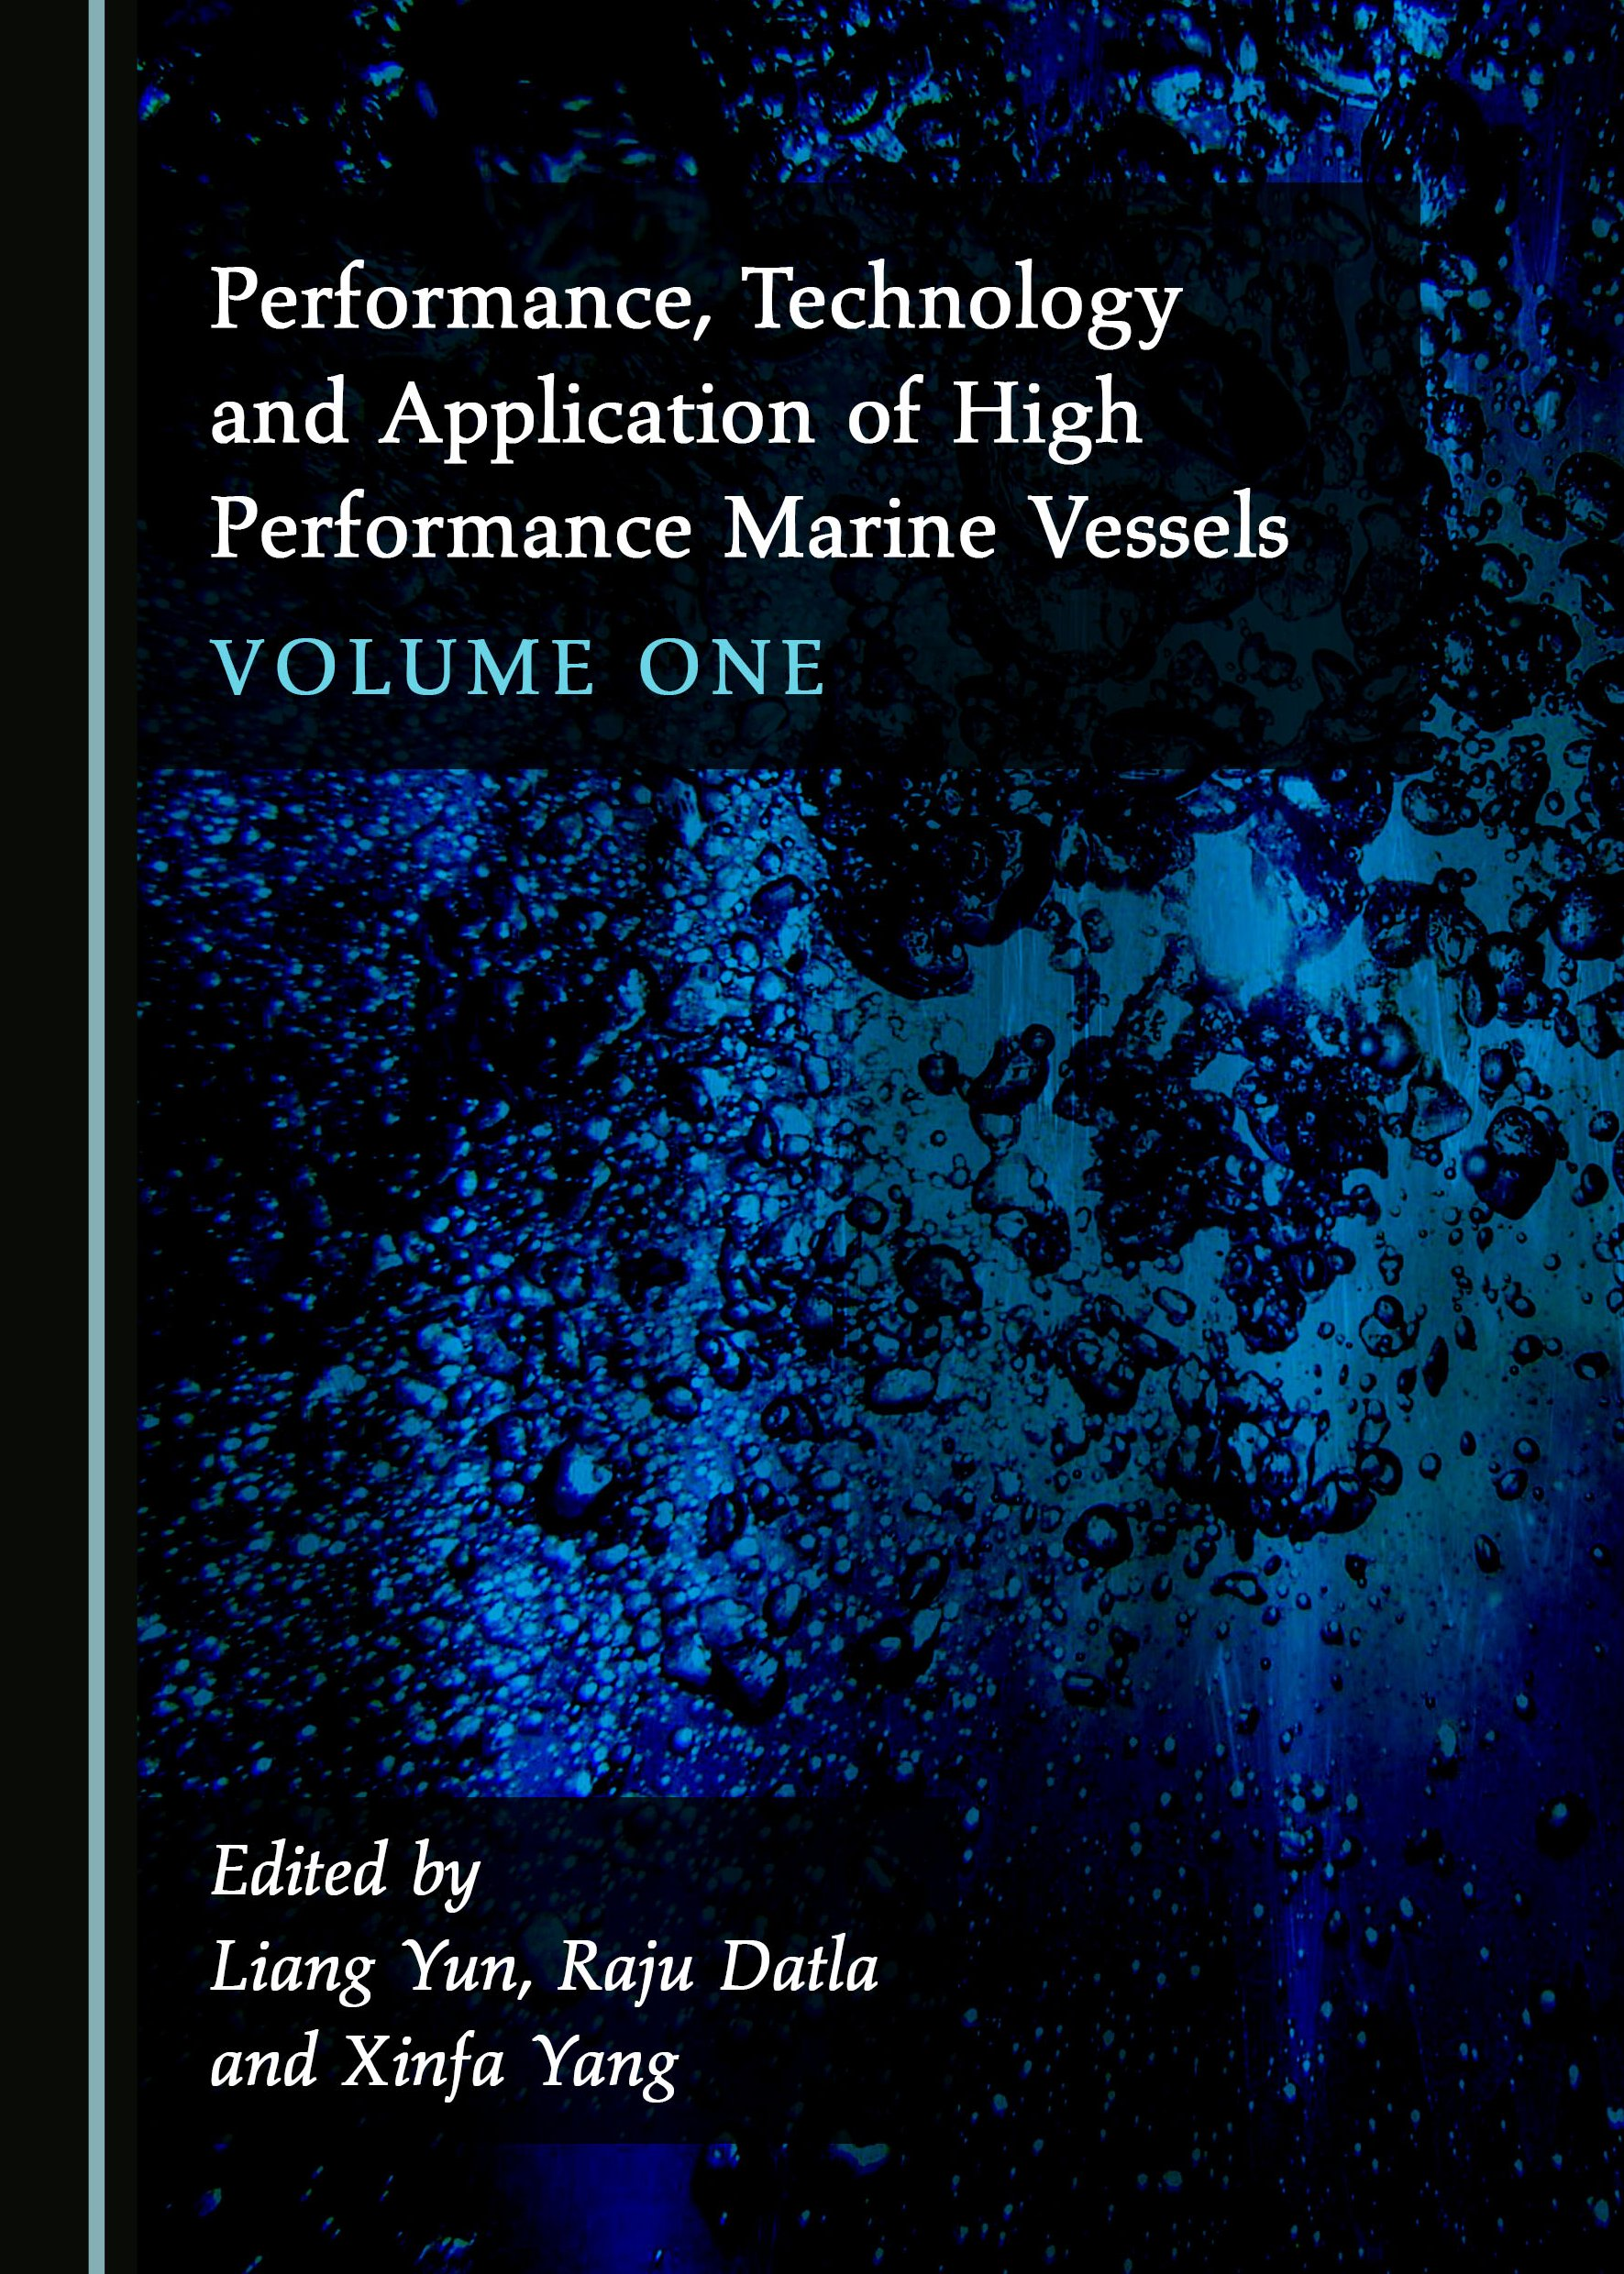 Performance, Technology and Application of High Performance Marine Vessels Volume One